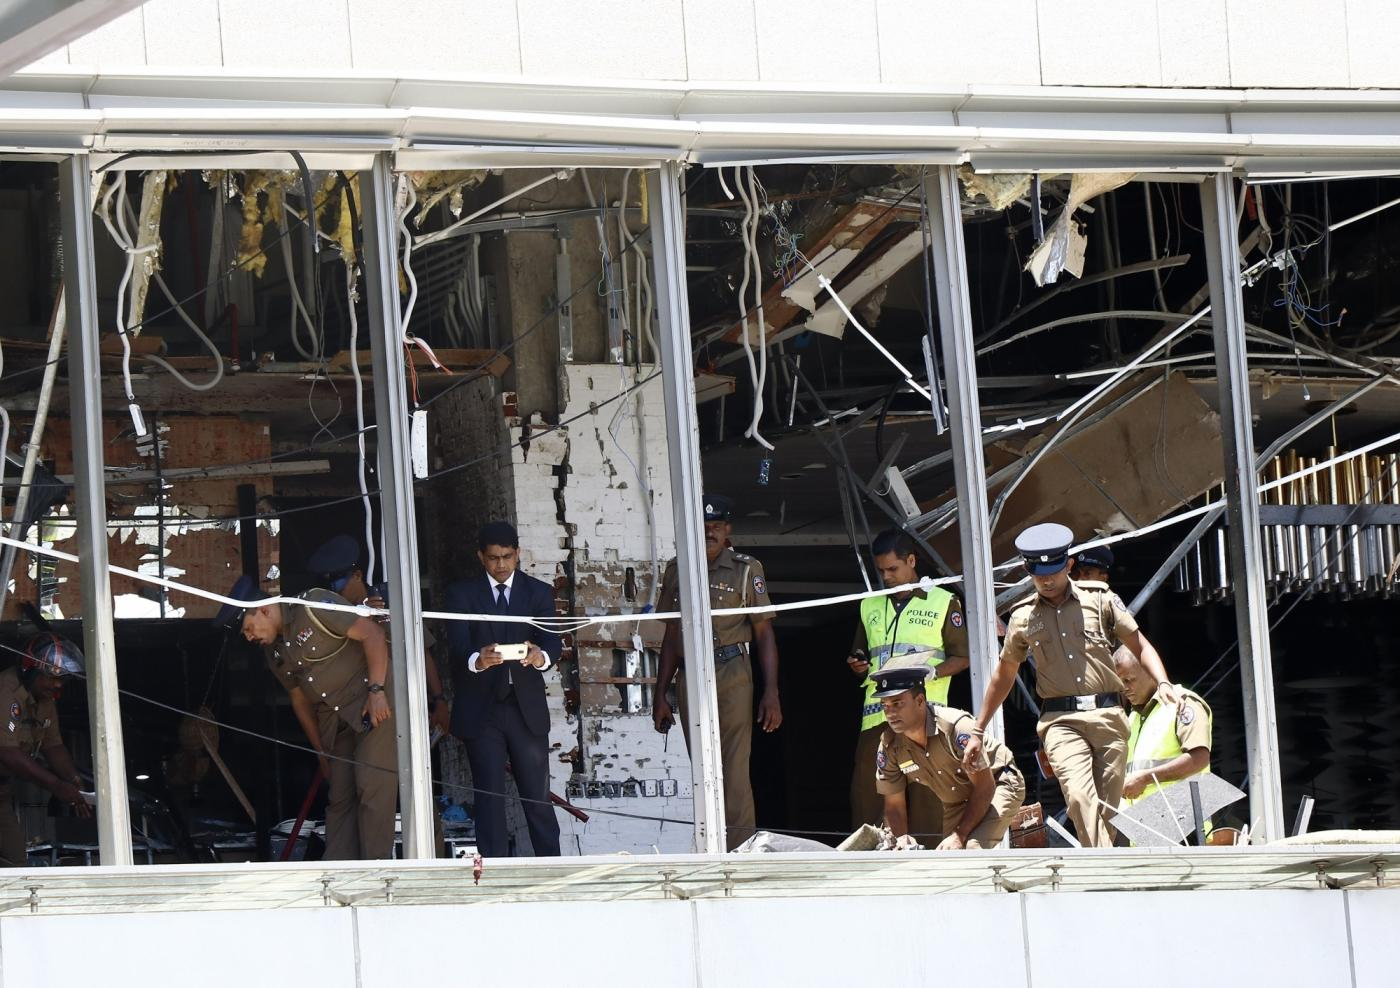 Colombo, April 22, 2019 (Xinhua) -- Police and investigators work at a blast scene at Shangri-La hotel in Colombo, Sri Lanka, April 21, 2019. The death toll from the multiple blasts that ripped through Sri Lanka on Sunday rose to 228 while 450 others were injured, local media quoting hospital sources said. (Xinhua/Wang Shen/IANS) by .